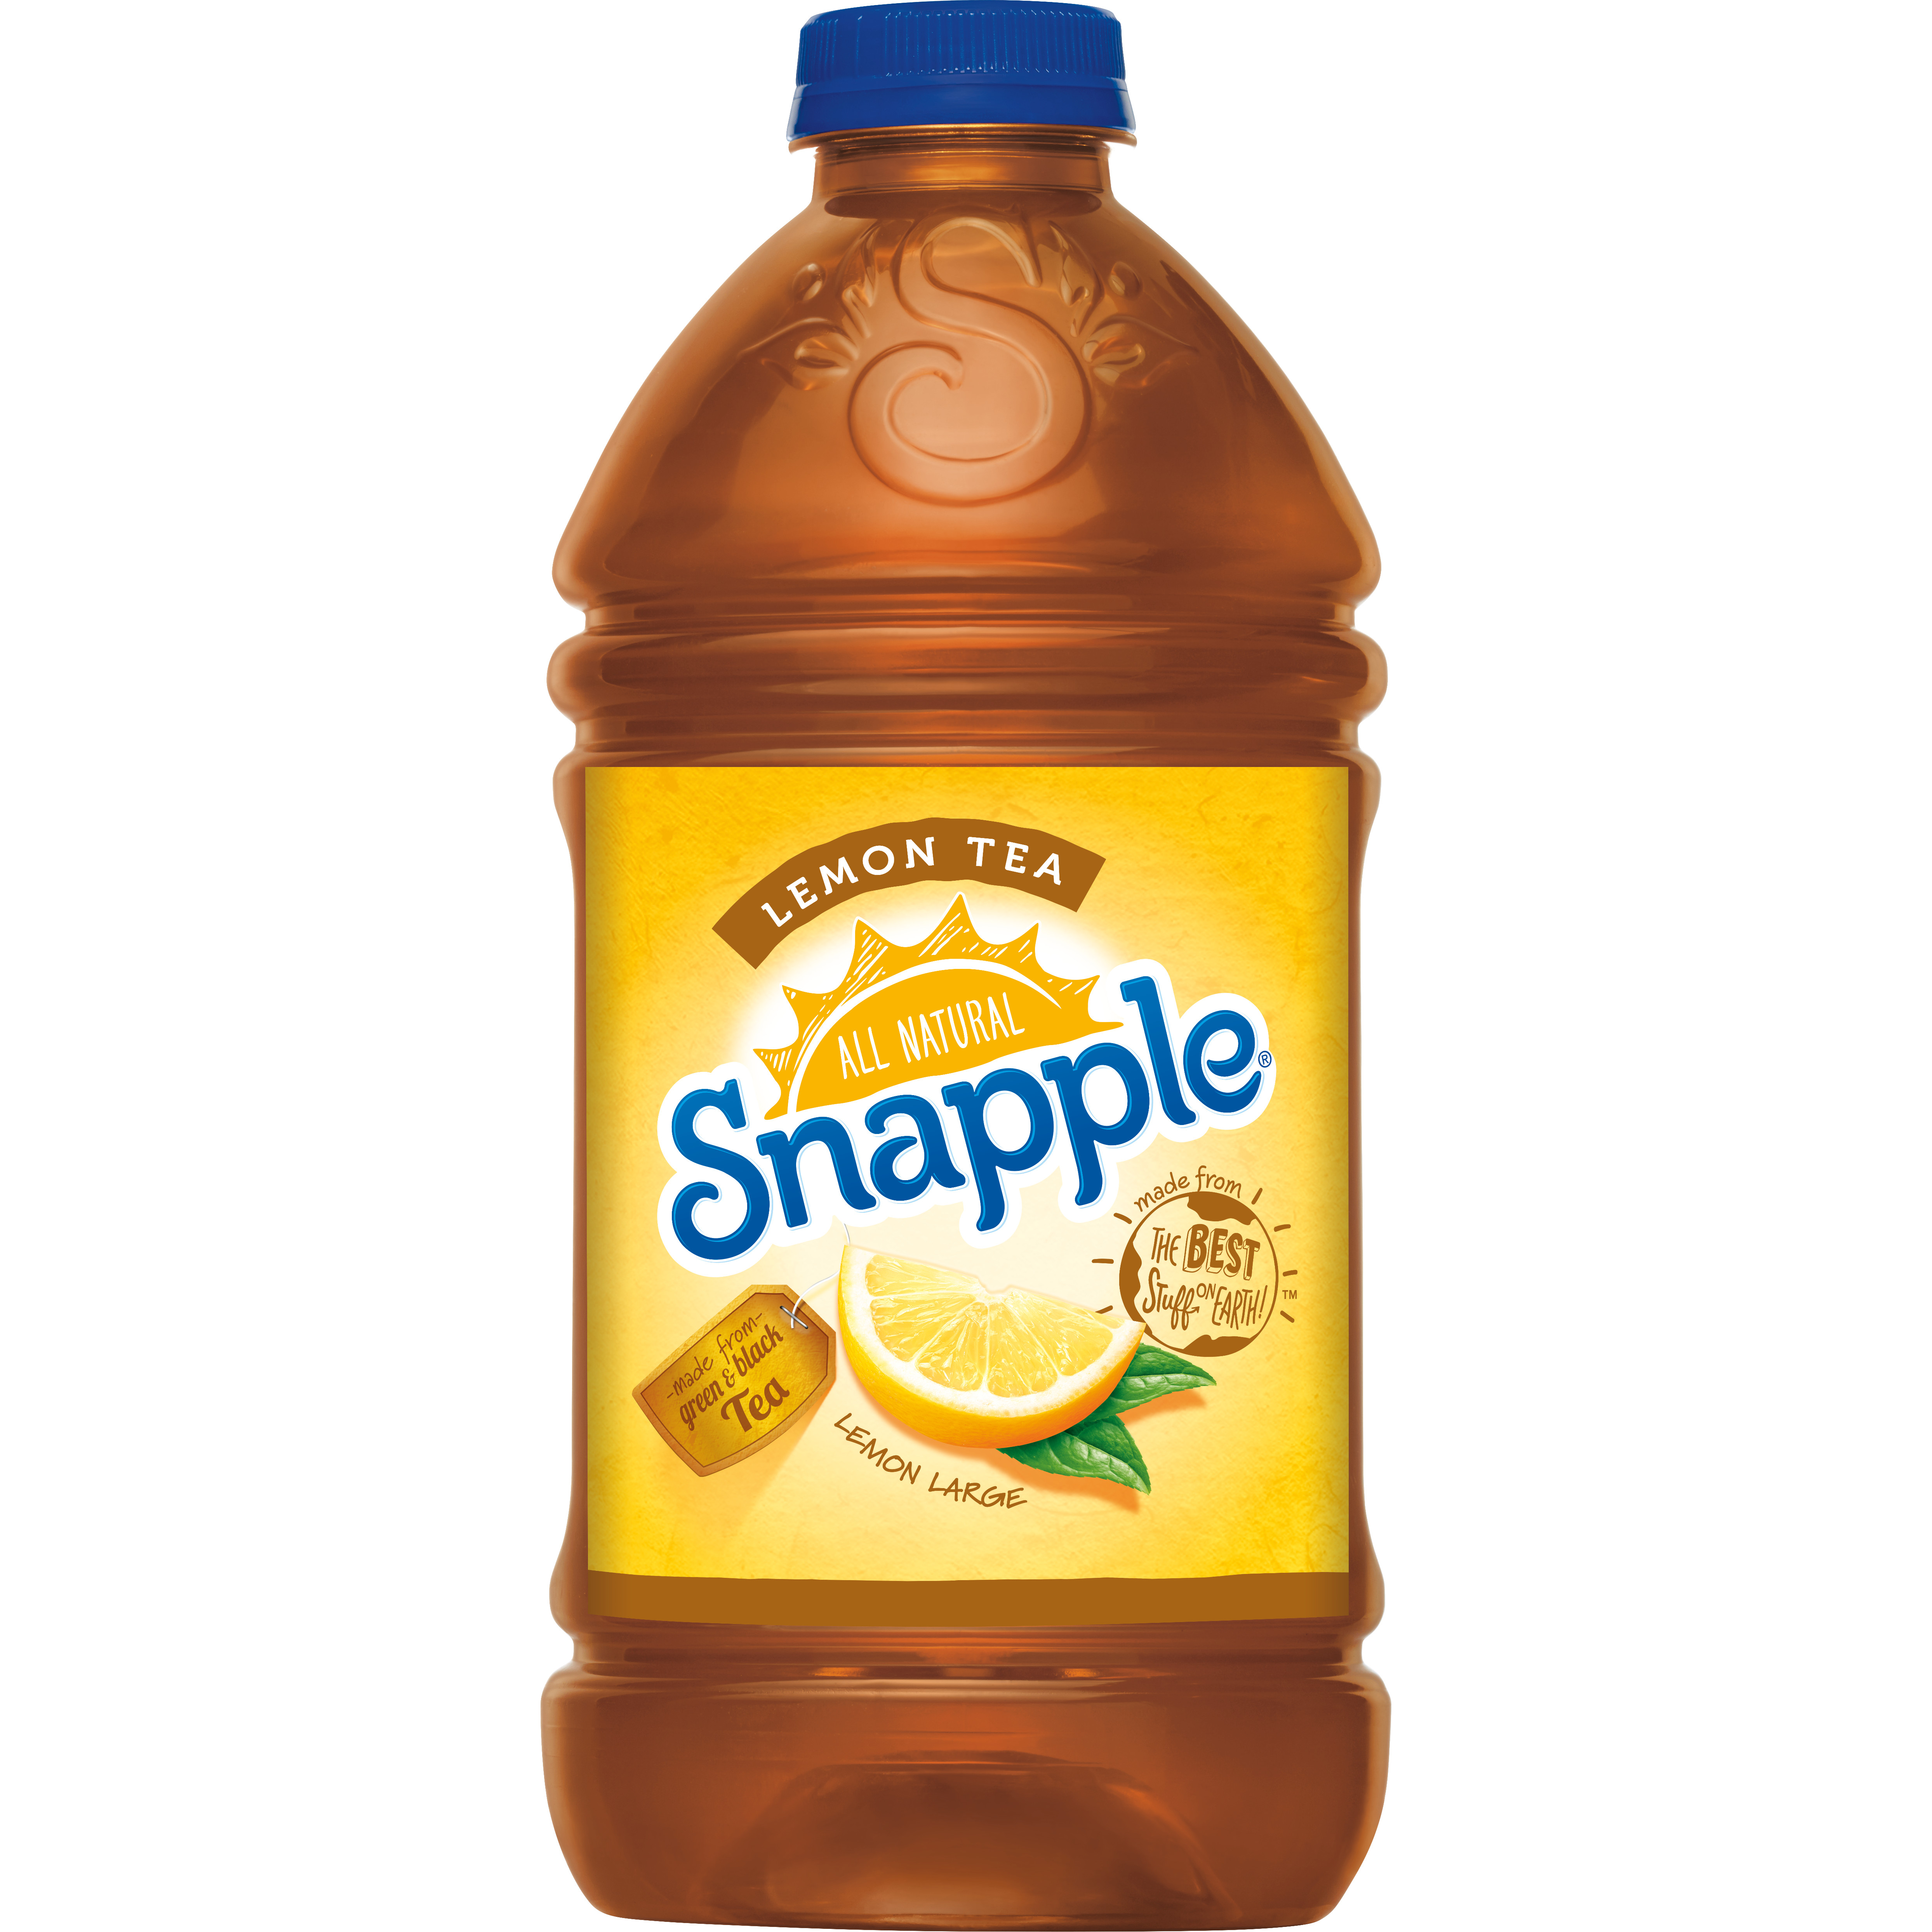 Snapple Lemon Tea, 64 Fl Oz, 1 Count